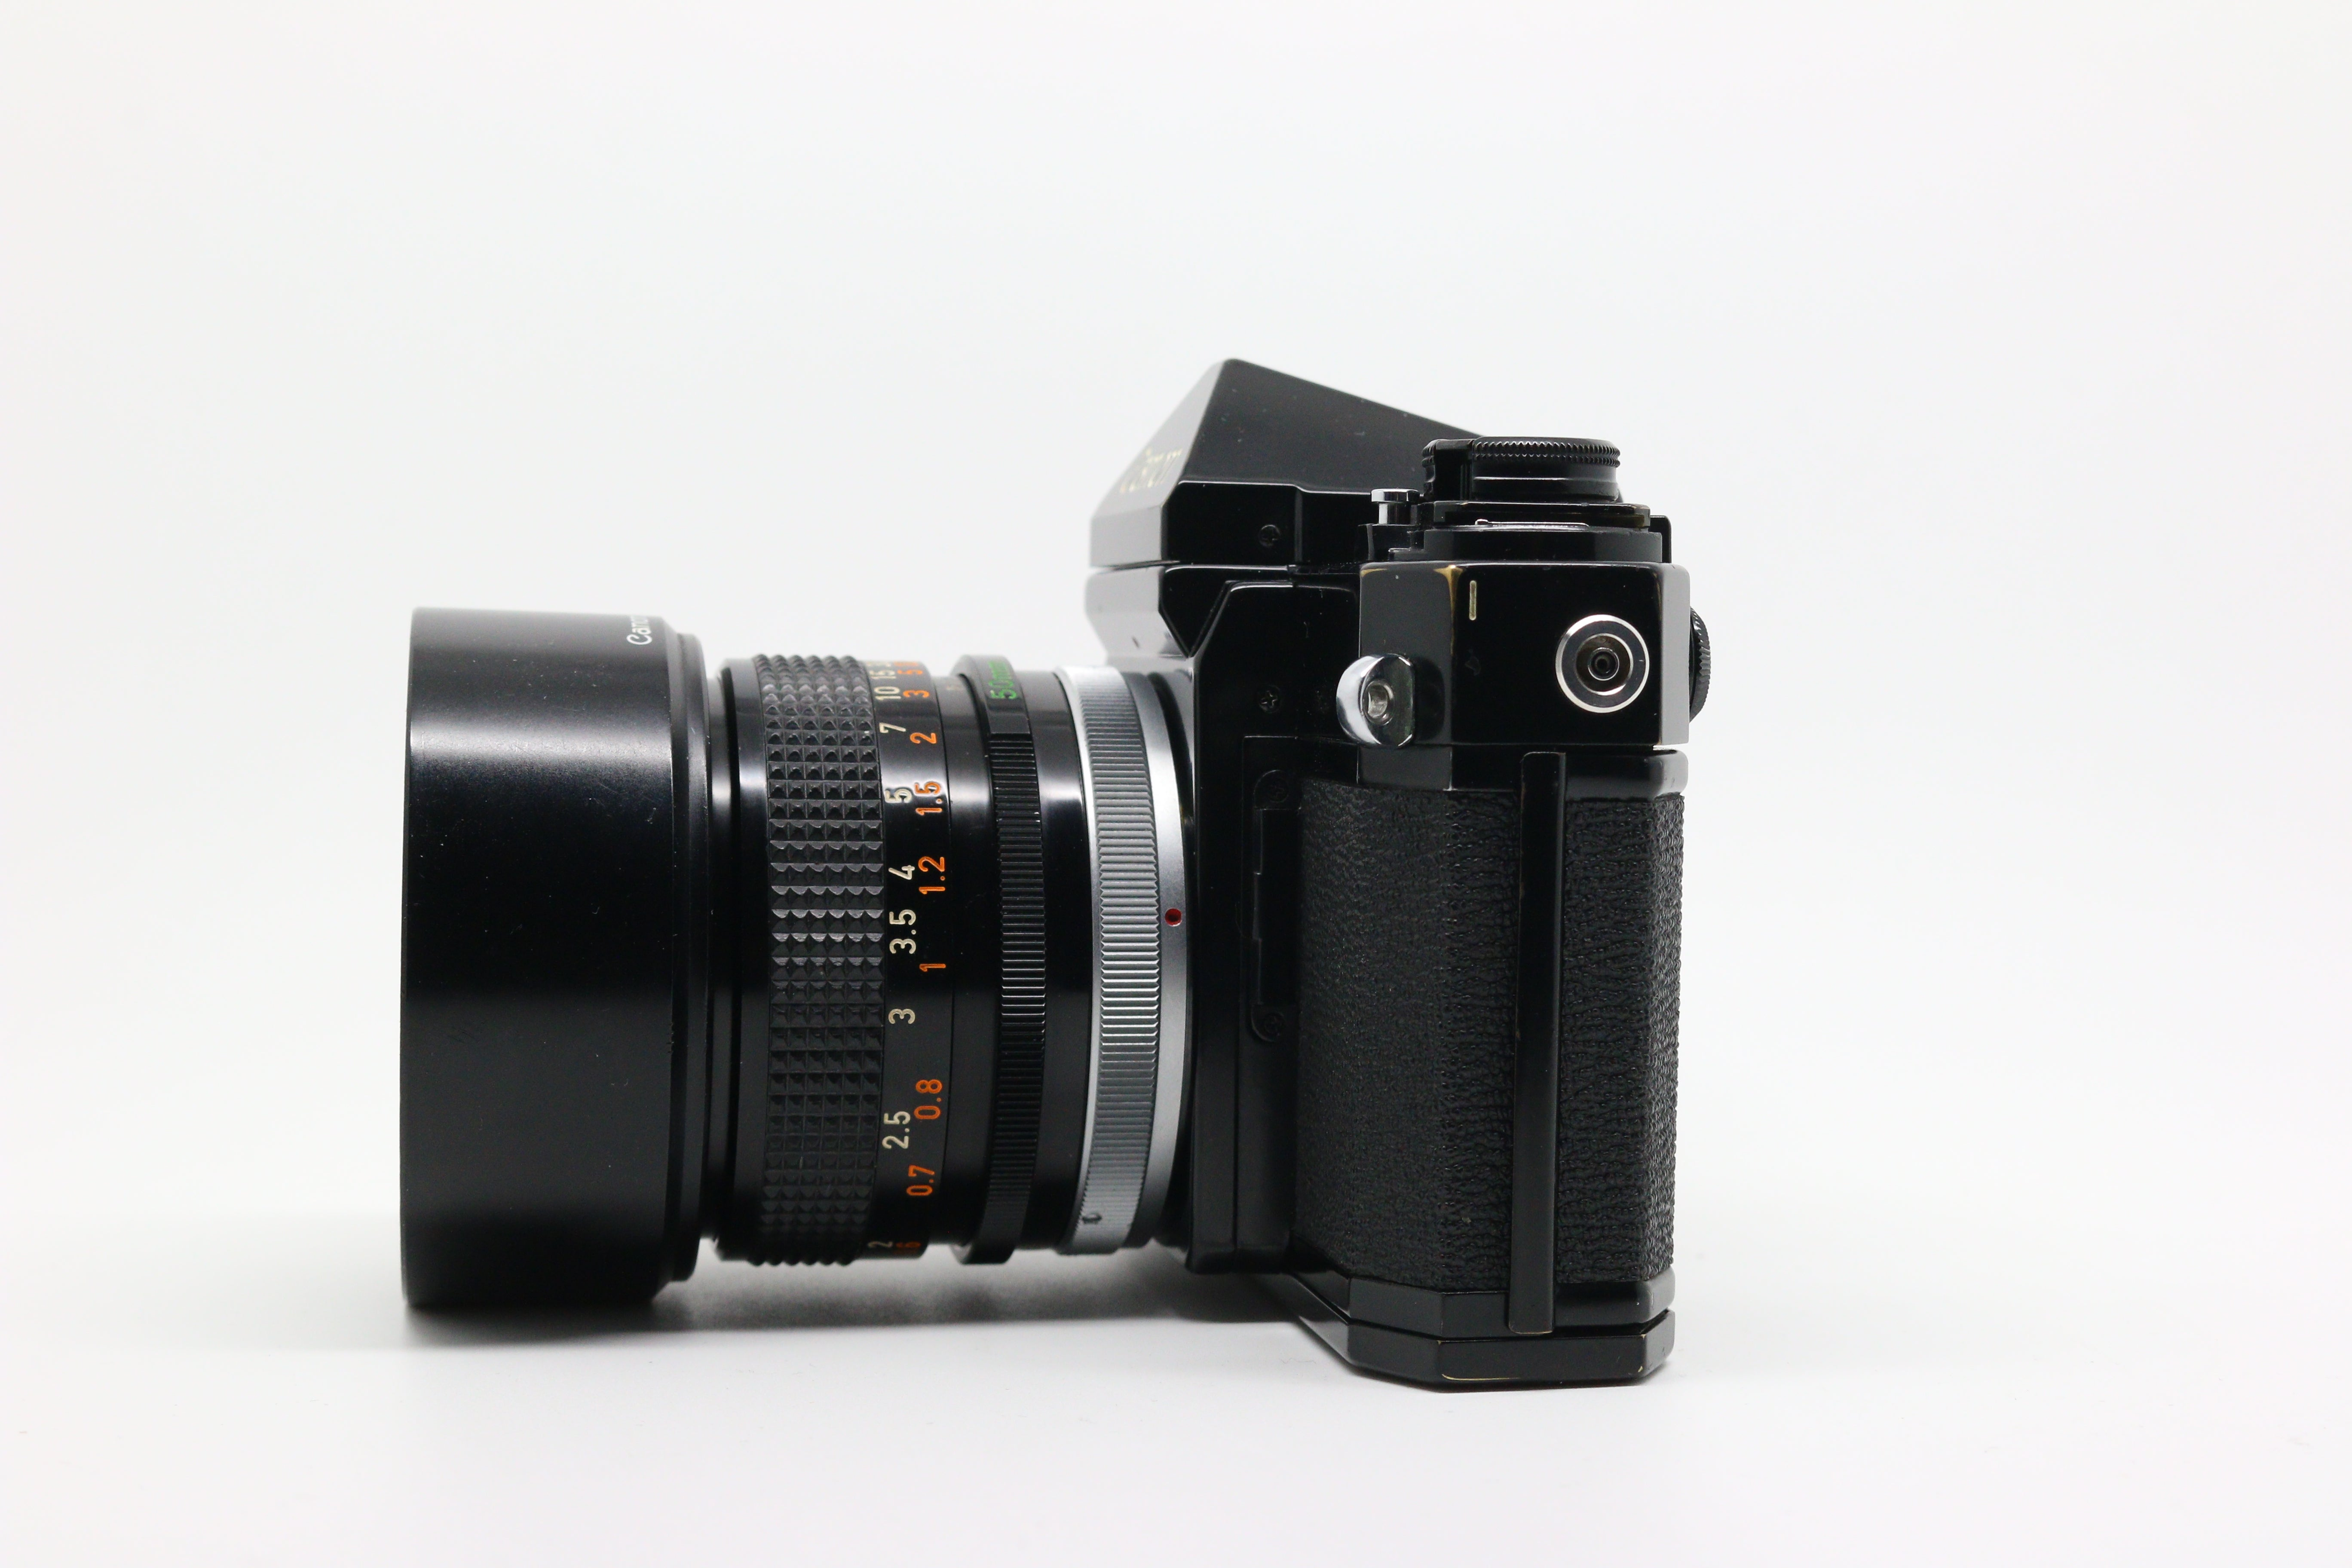 Canon F-1 & 50mm 1.4 FD SSC Lens